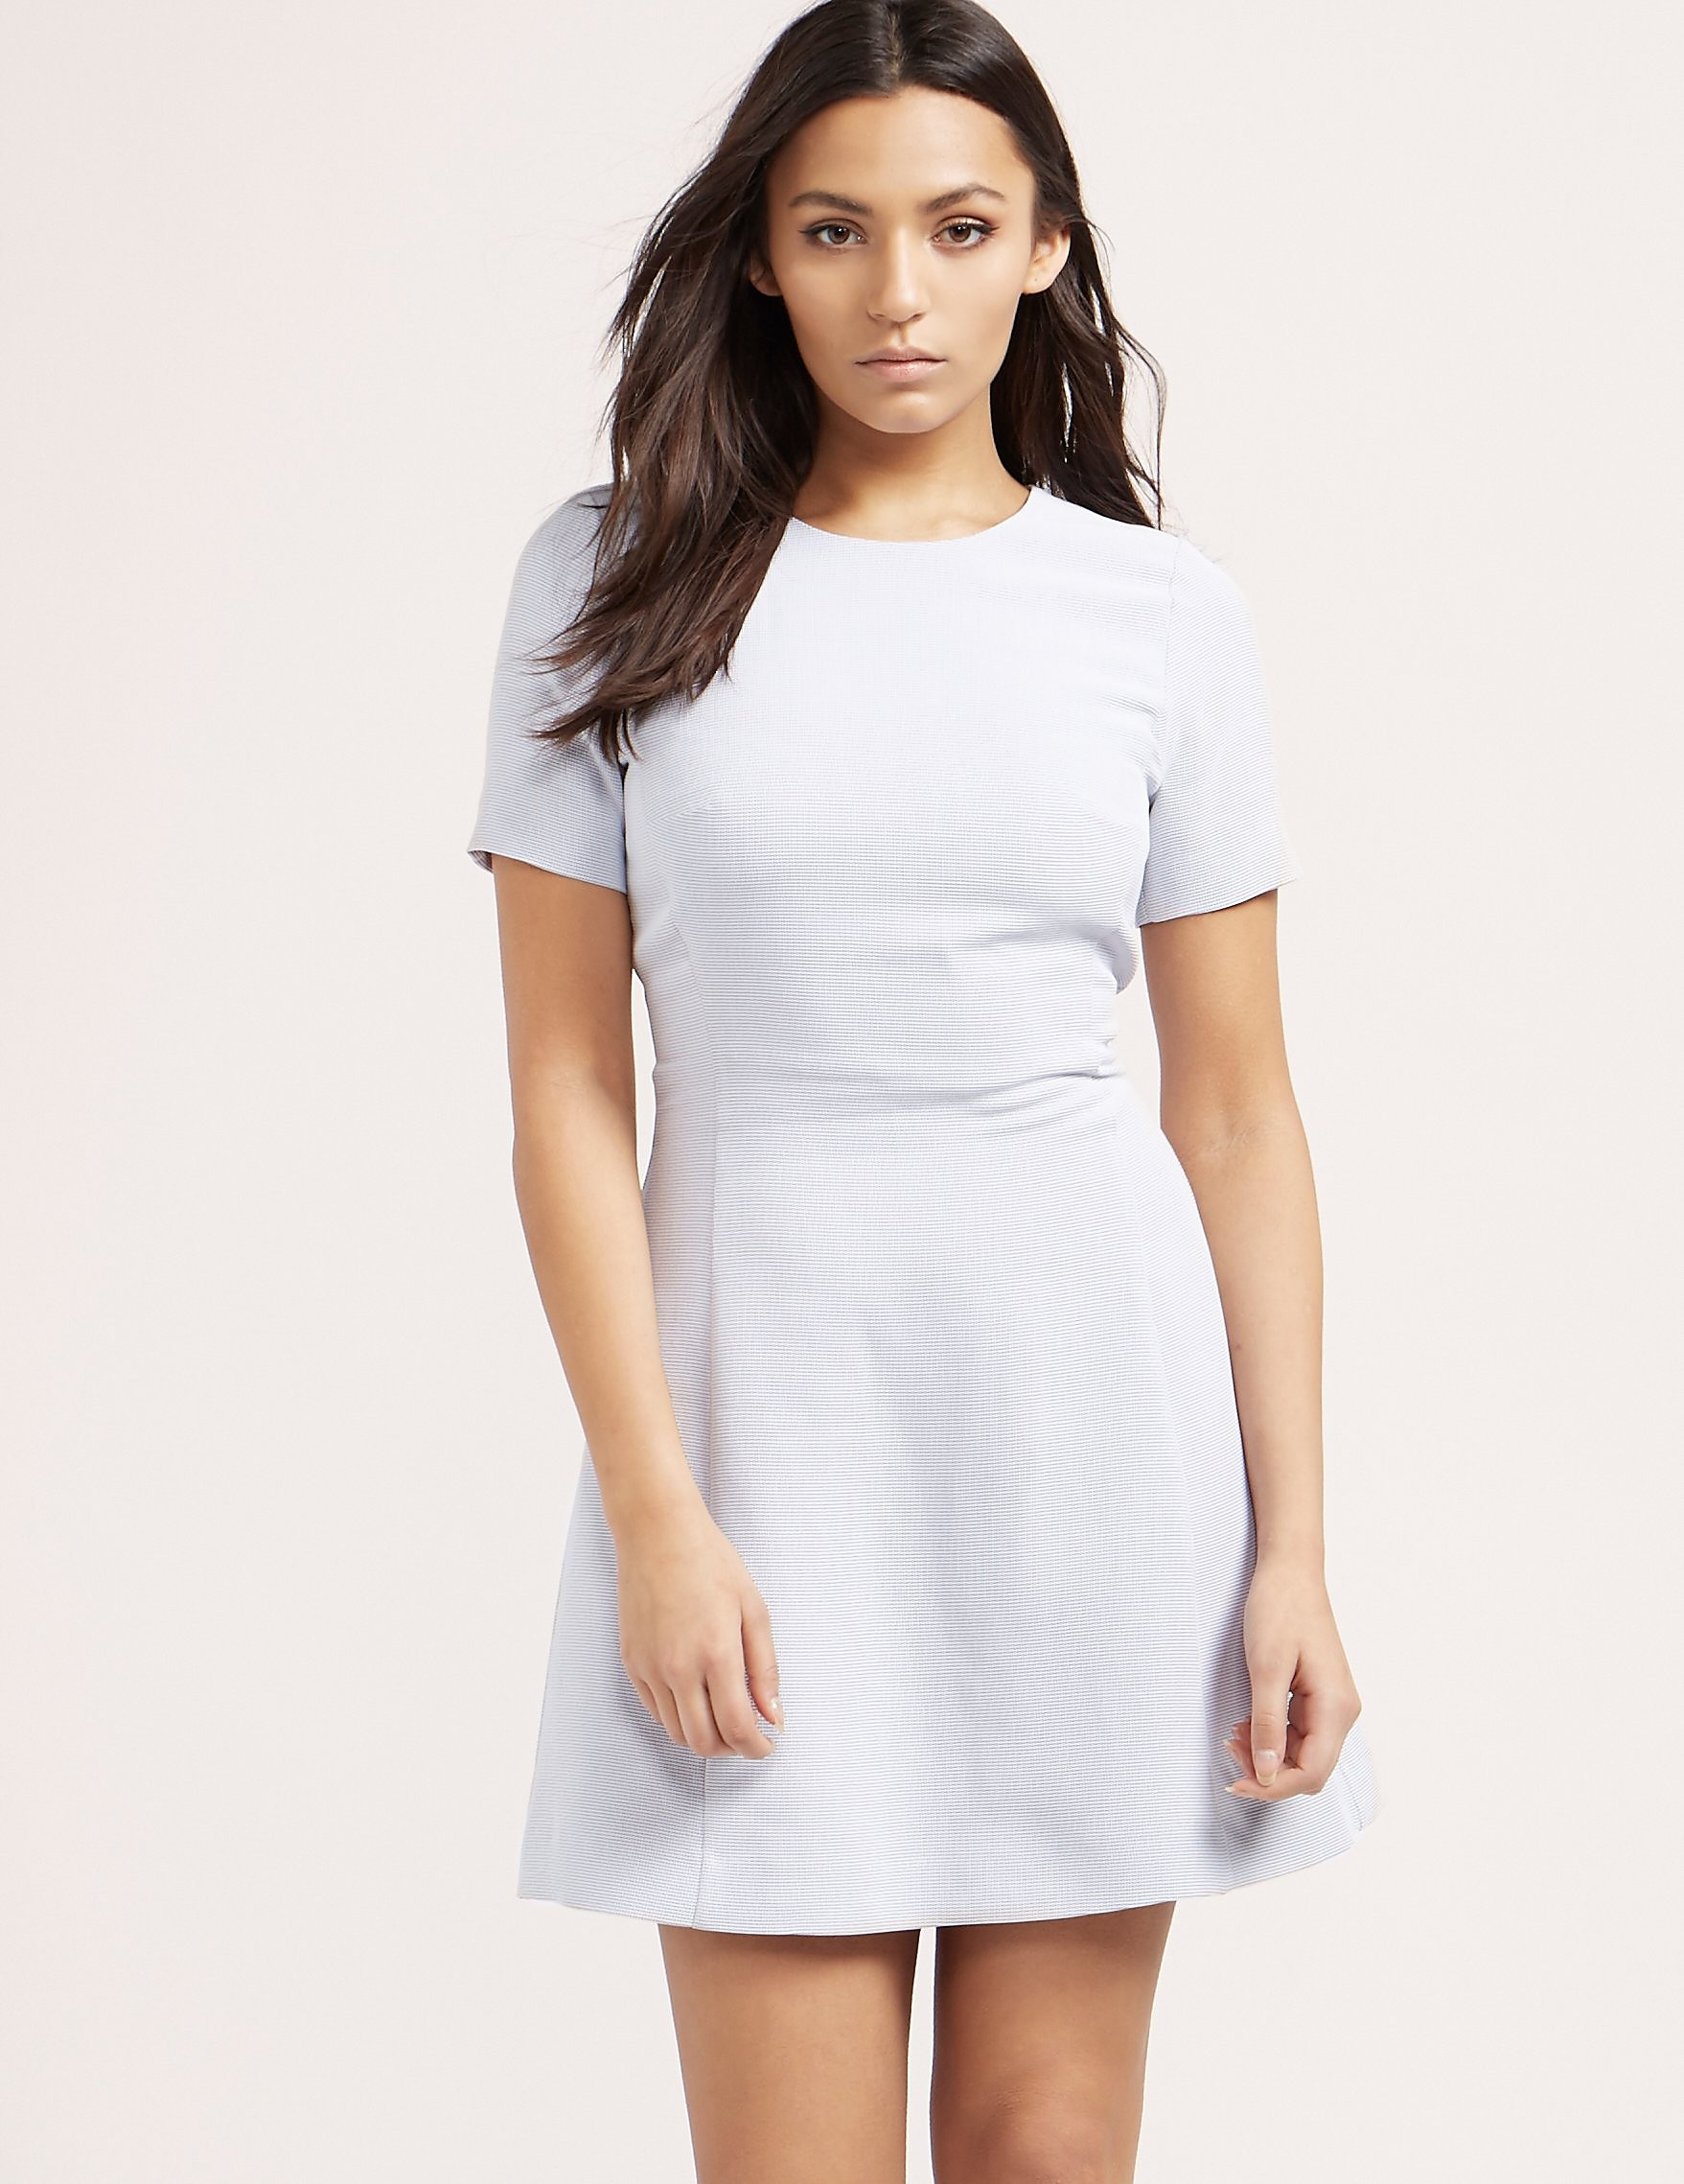 Armani Jeans Short Sleeve Dress